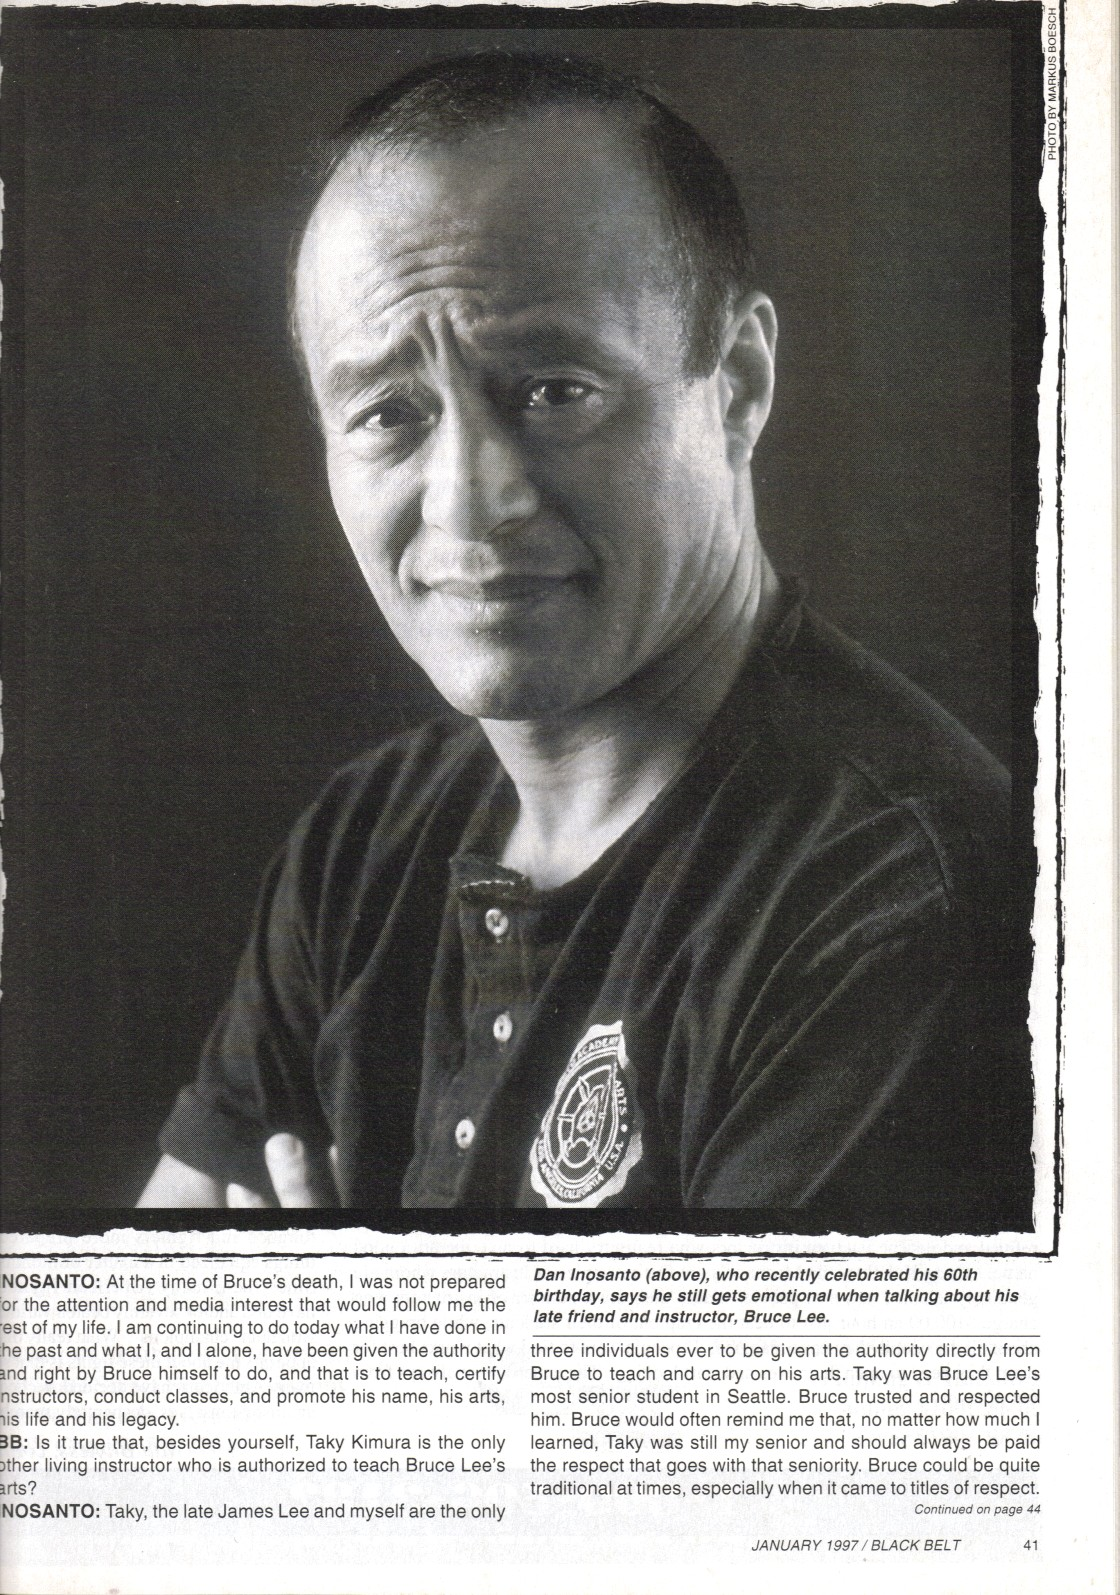 All JKD Inst. come from Dan Inosanto Except he himself